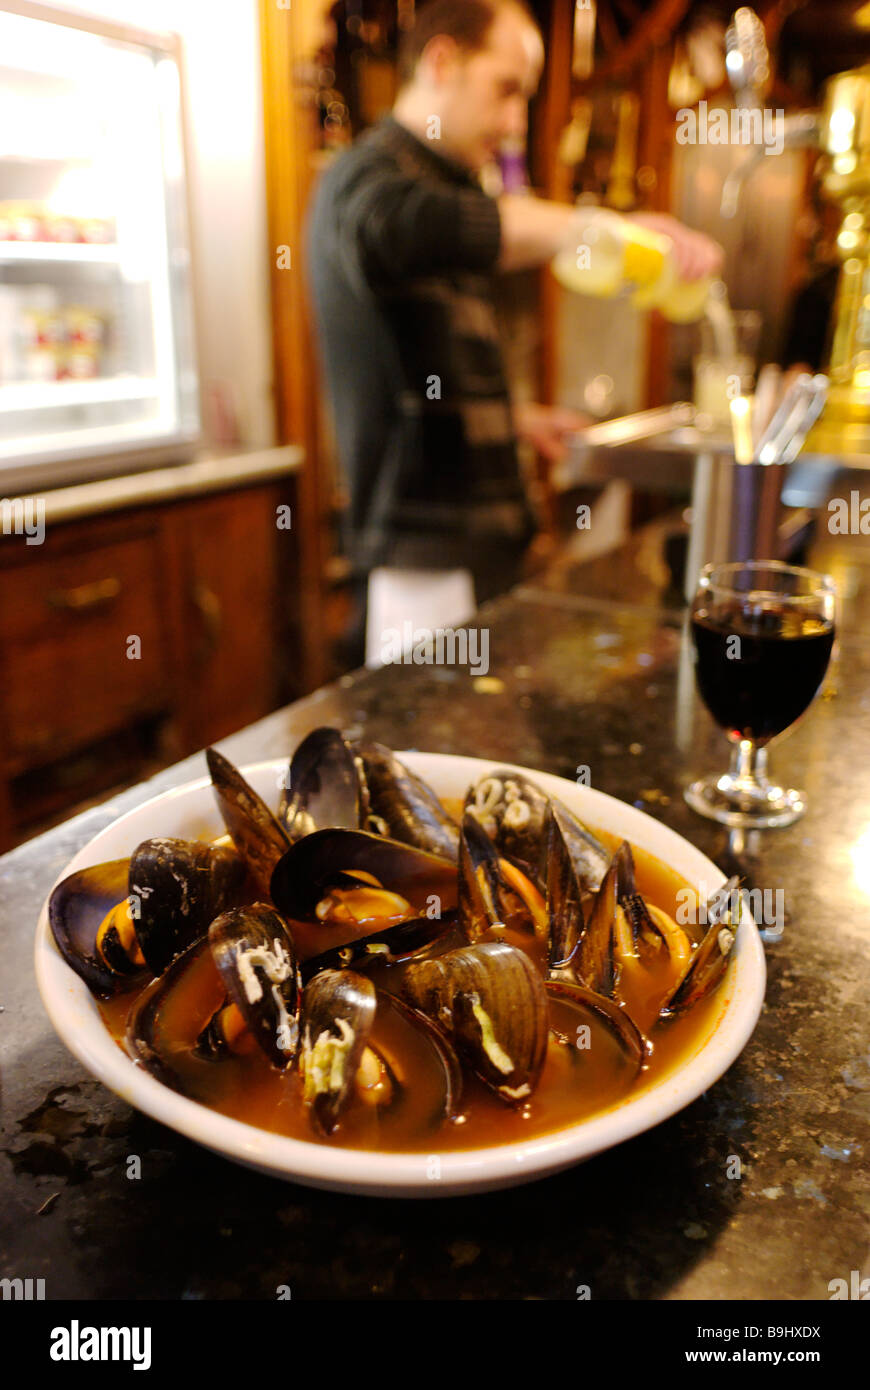 Bowl of mussels in spicy reddy brown watery soup which is a speciality tapa of Bar PIlar in El Carmen Valencia Spain - Stock Image